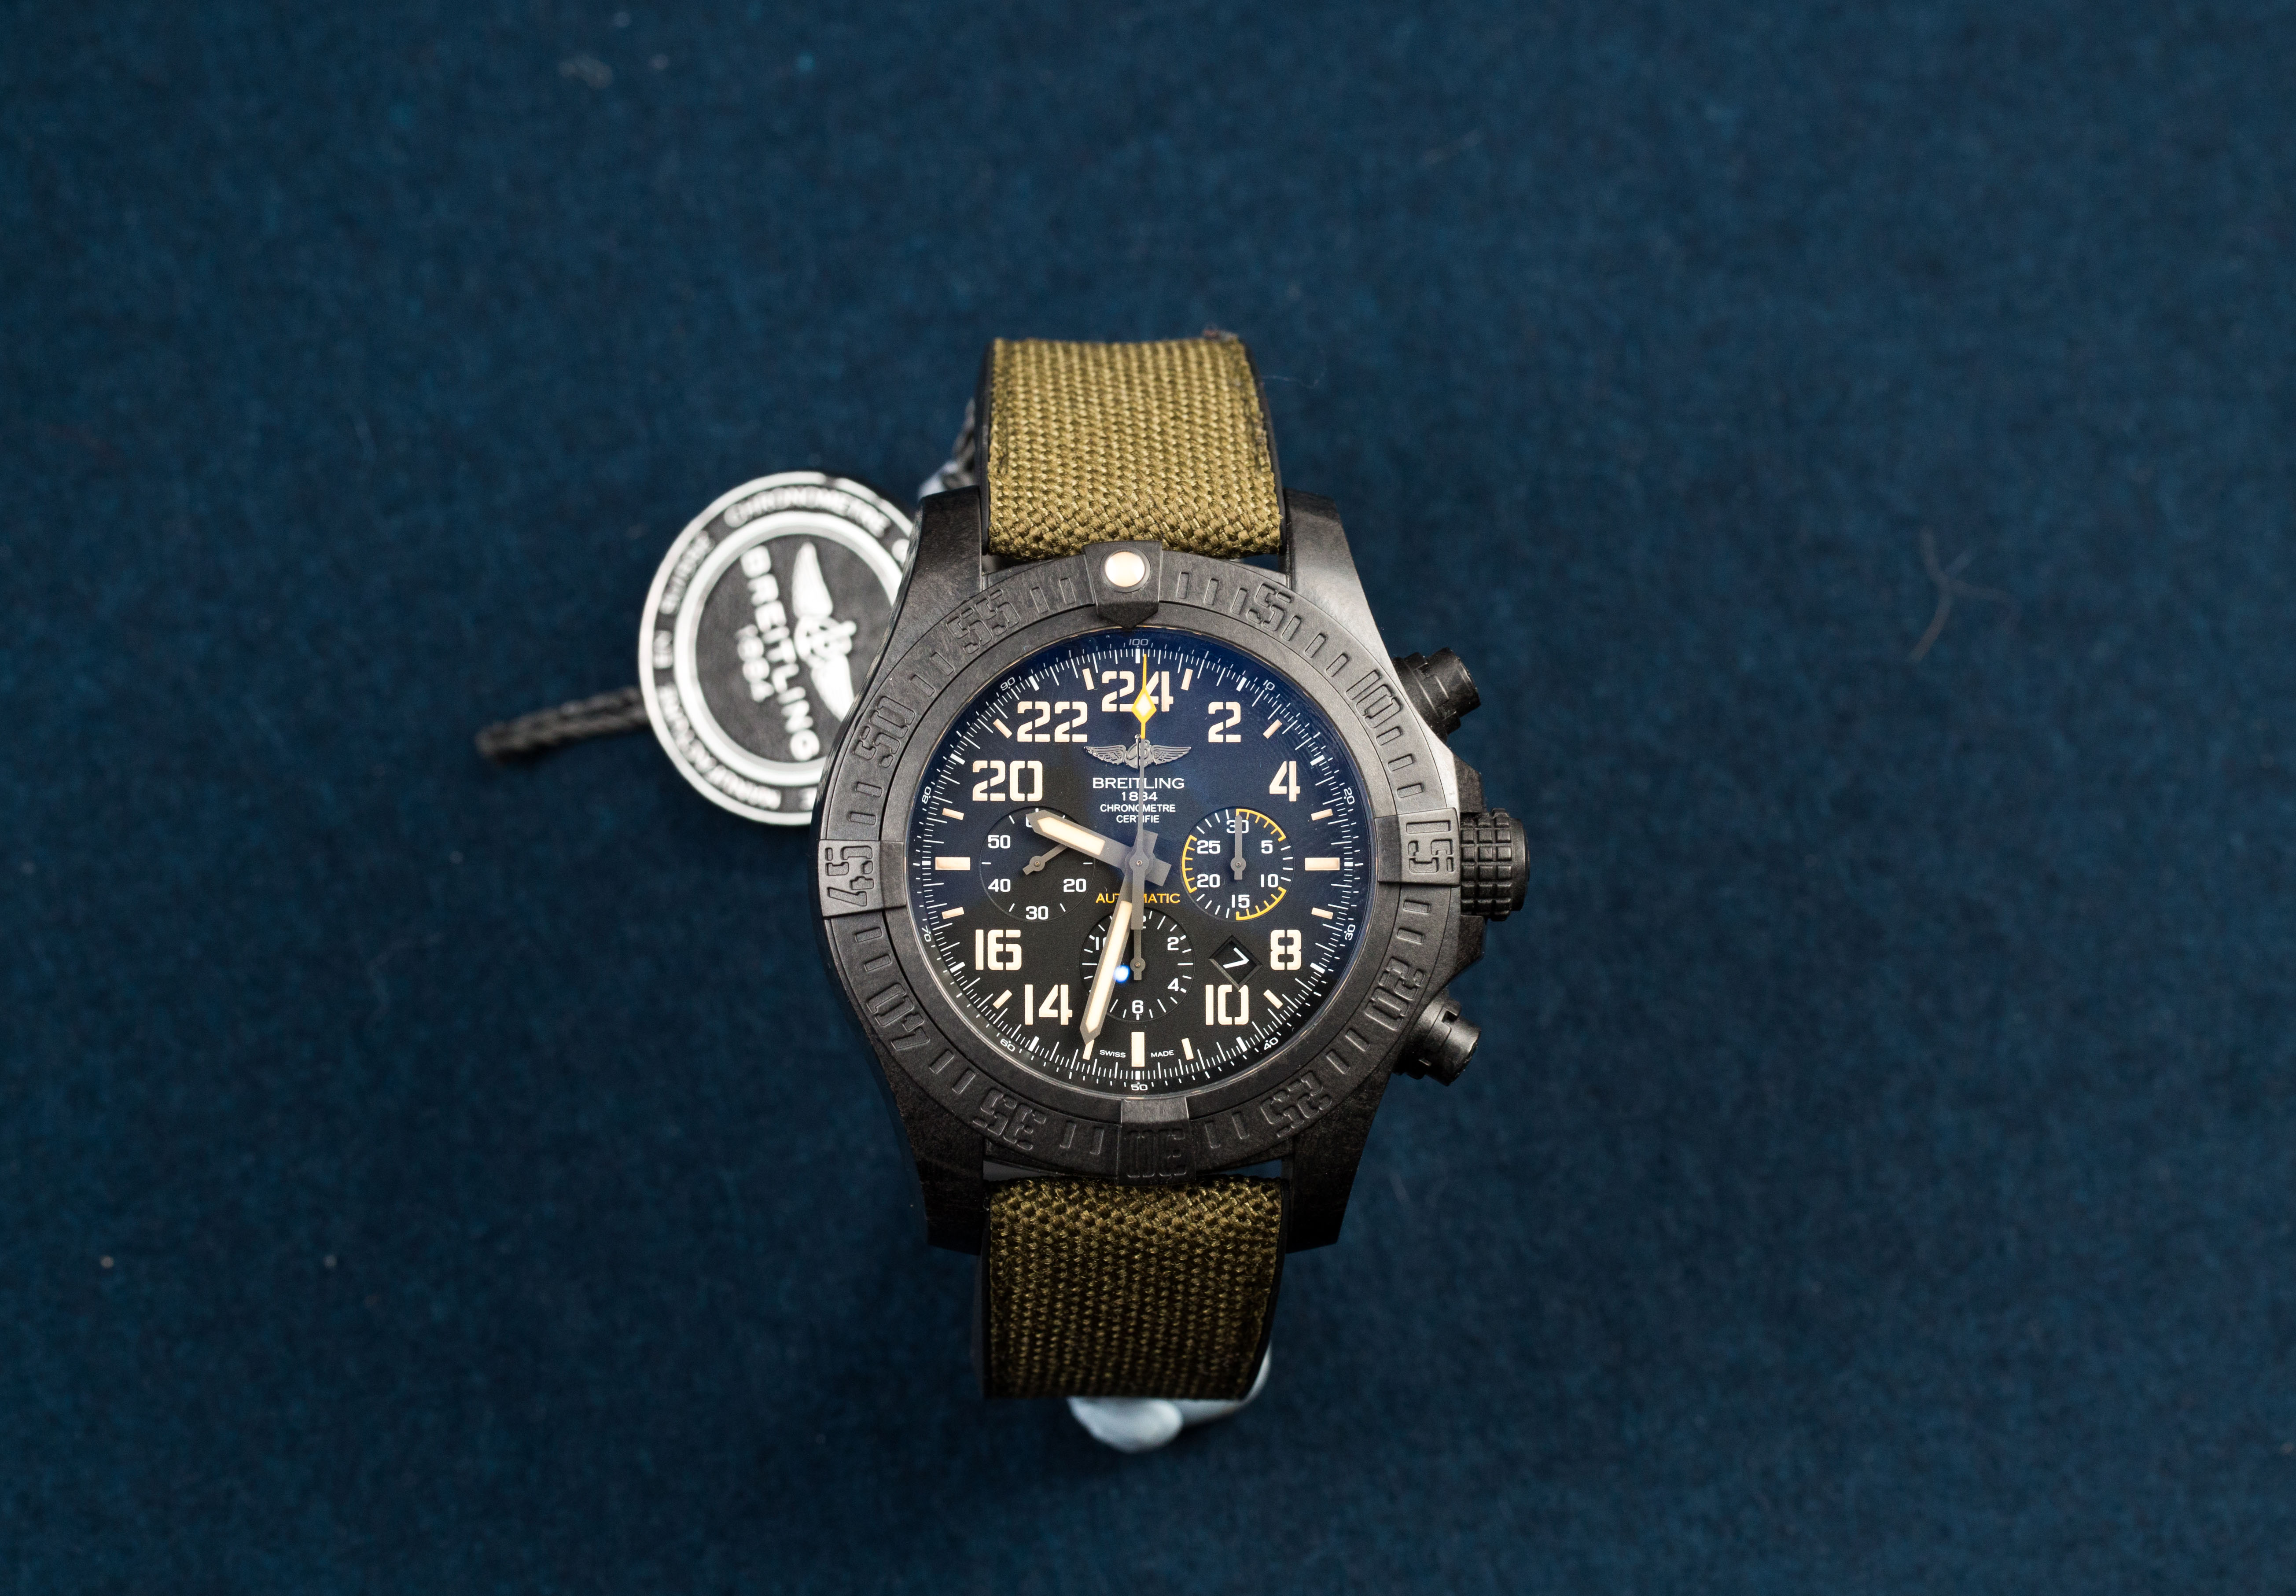 Lot 1 - BREITLING, New Old Stock, Avenger Chronograph Military Limited Edition